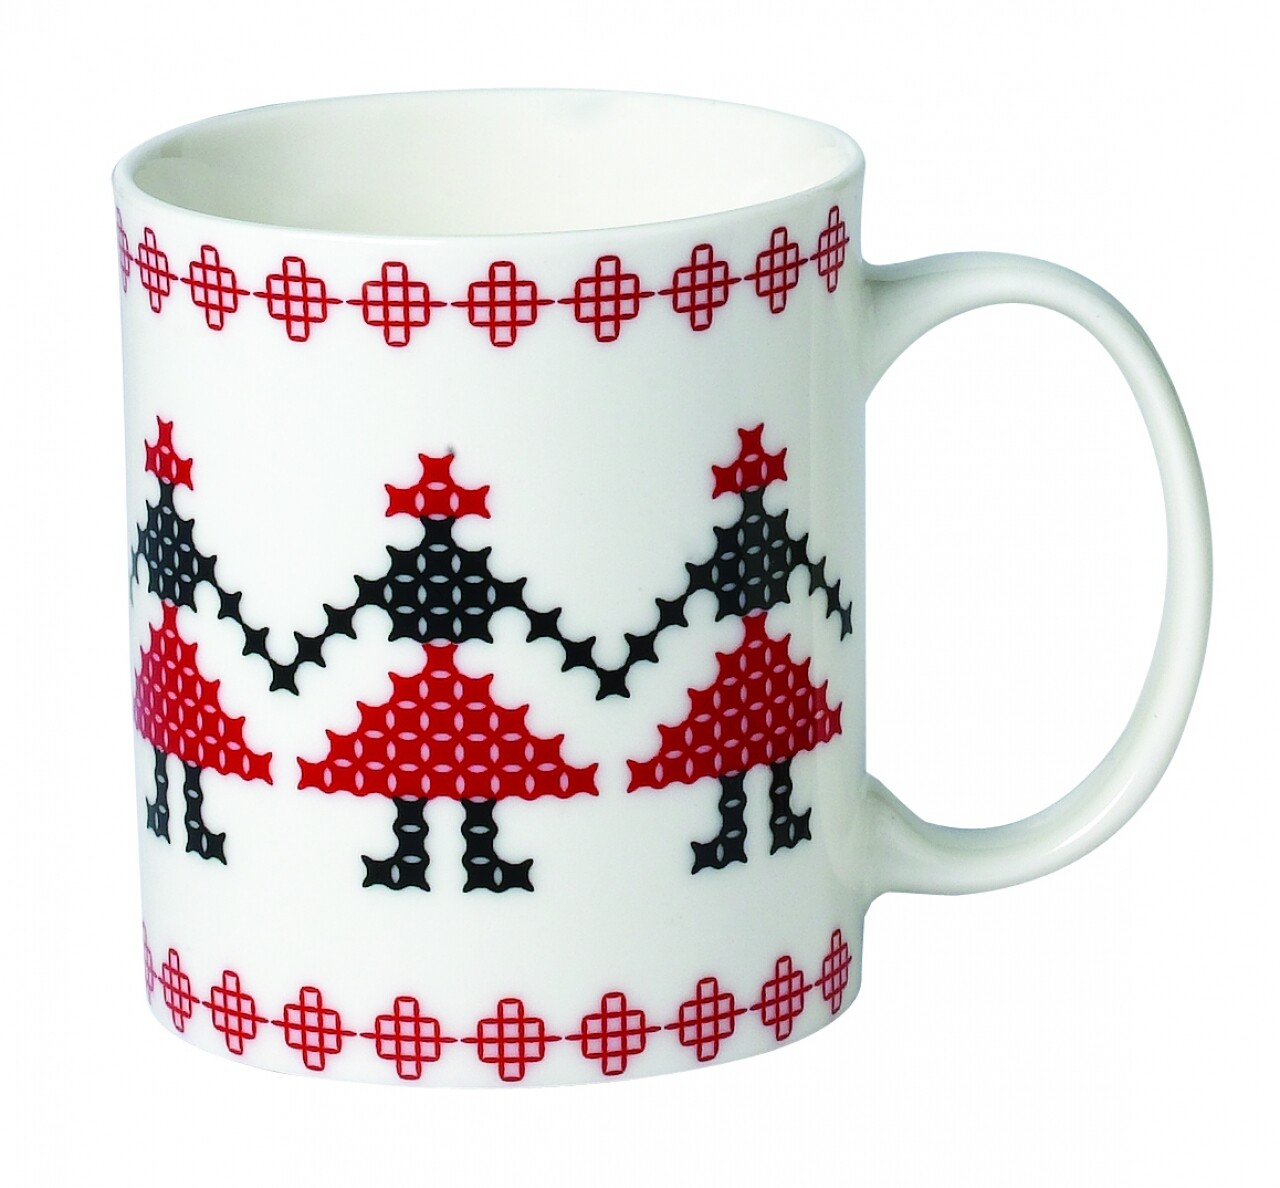 Cana Folk, Heinner Home, 310 ml, New Bone China, alb/negru/rosu